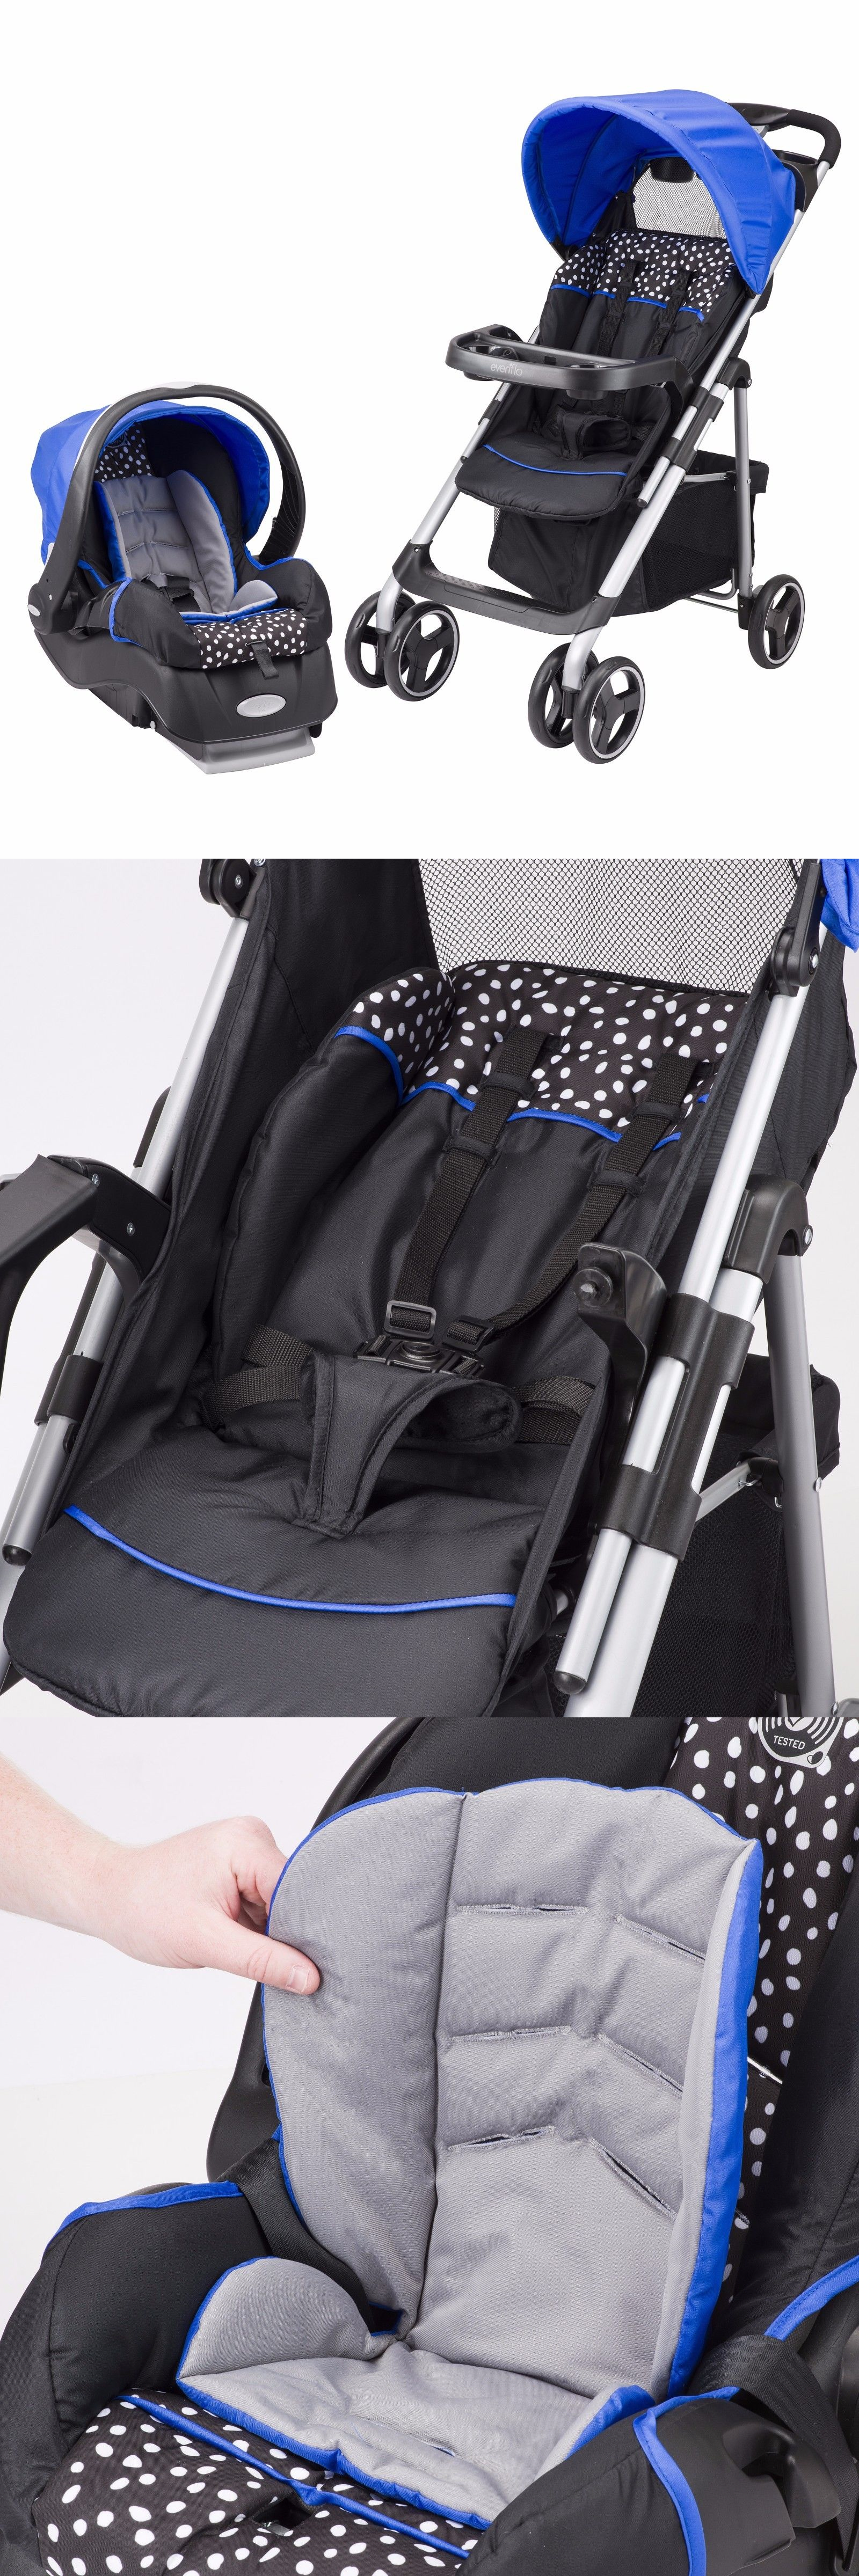 baby kid stuff Baby Stroller And Car Seat Combo Toddler